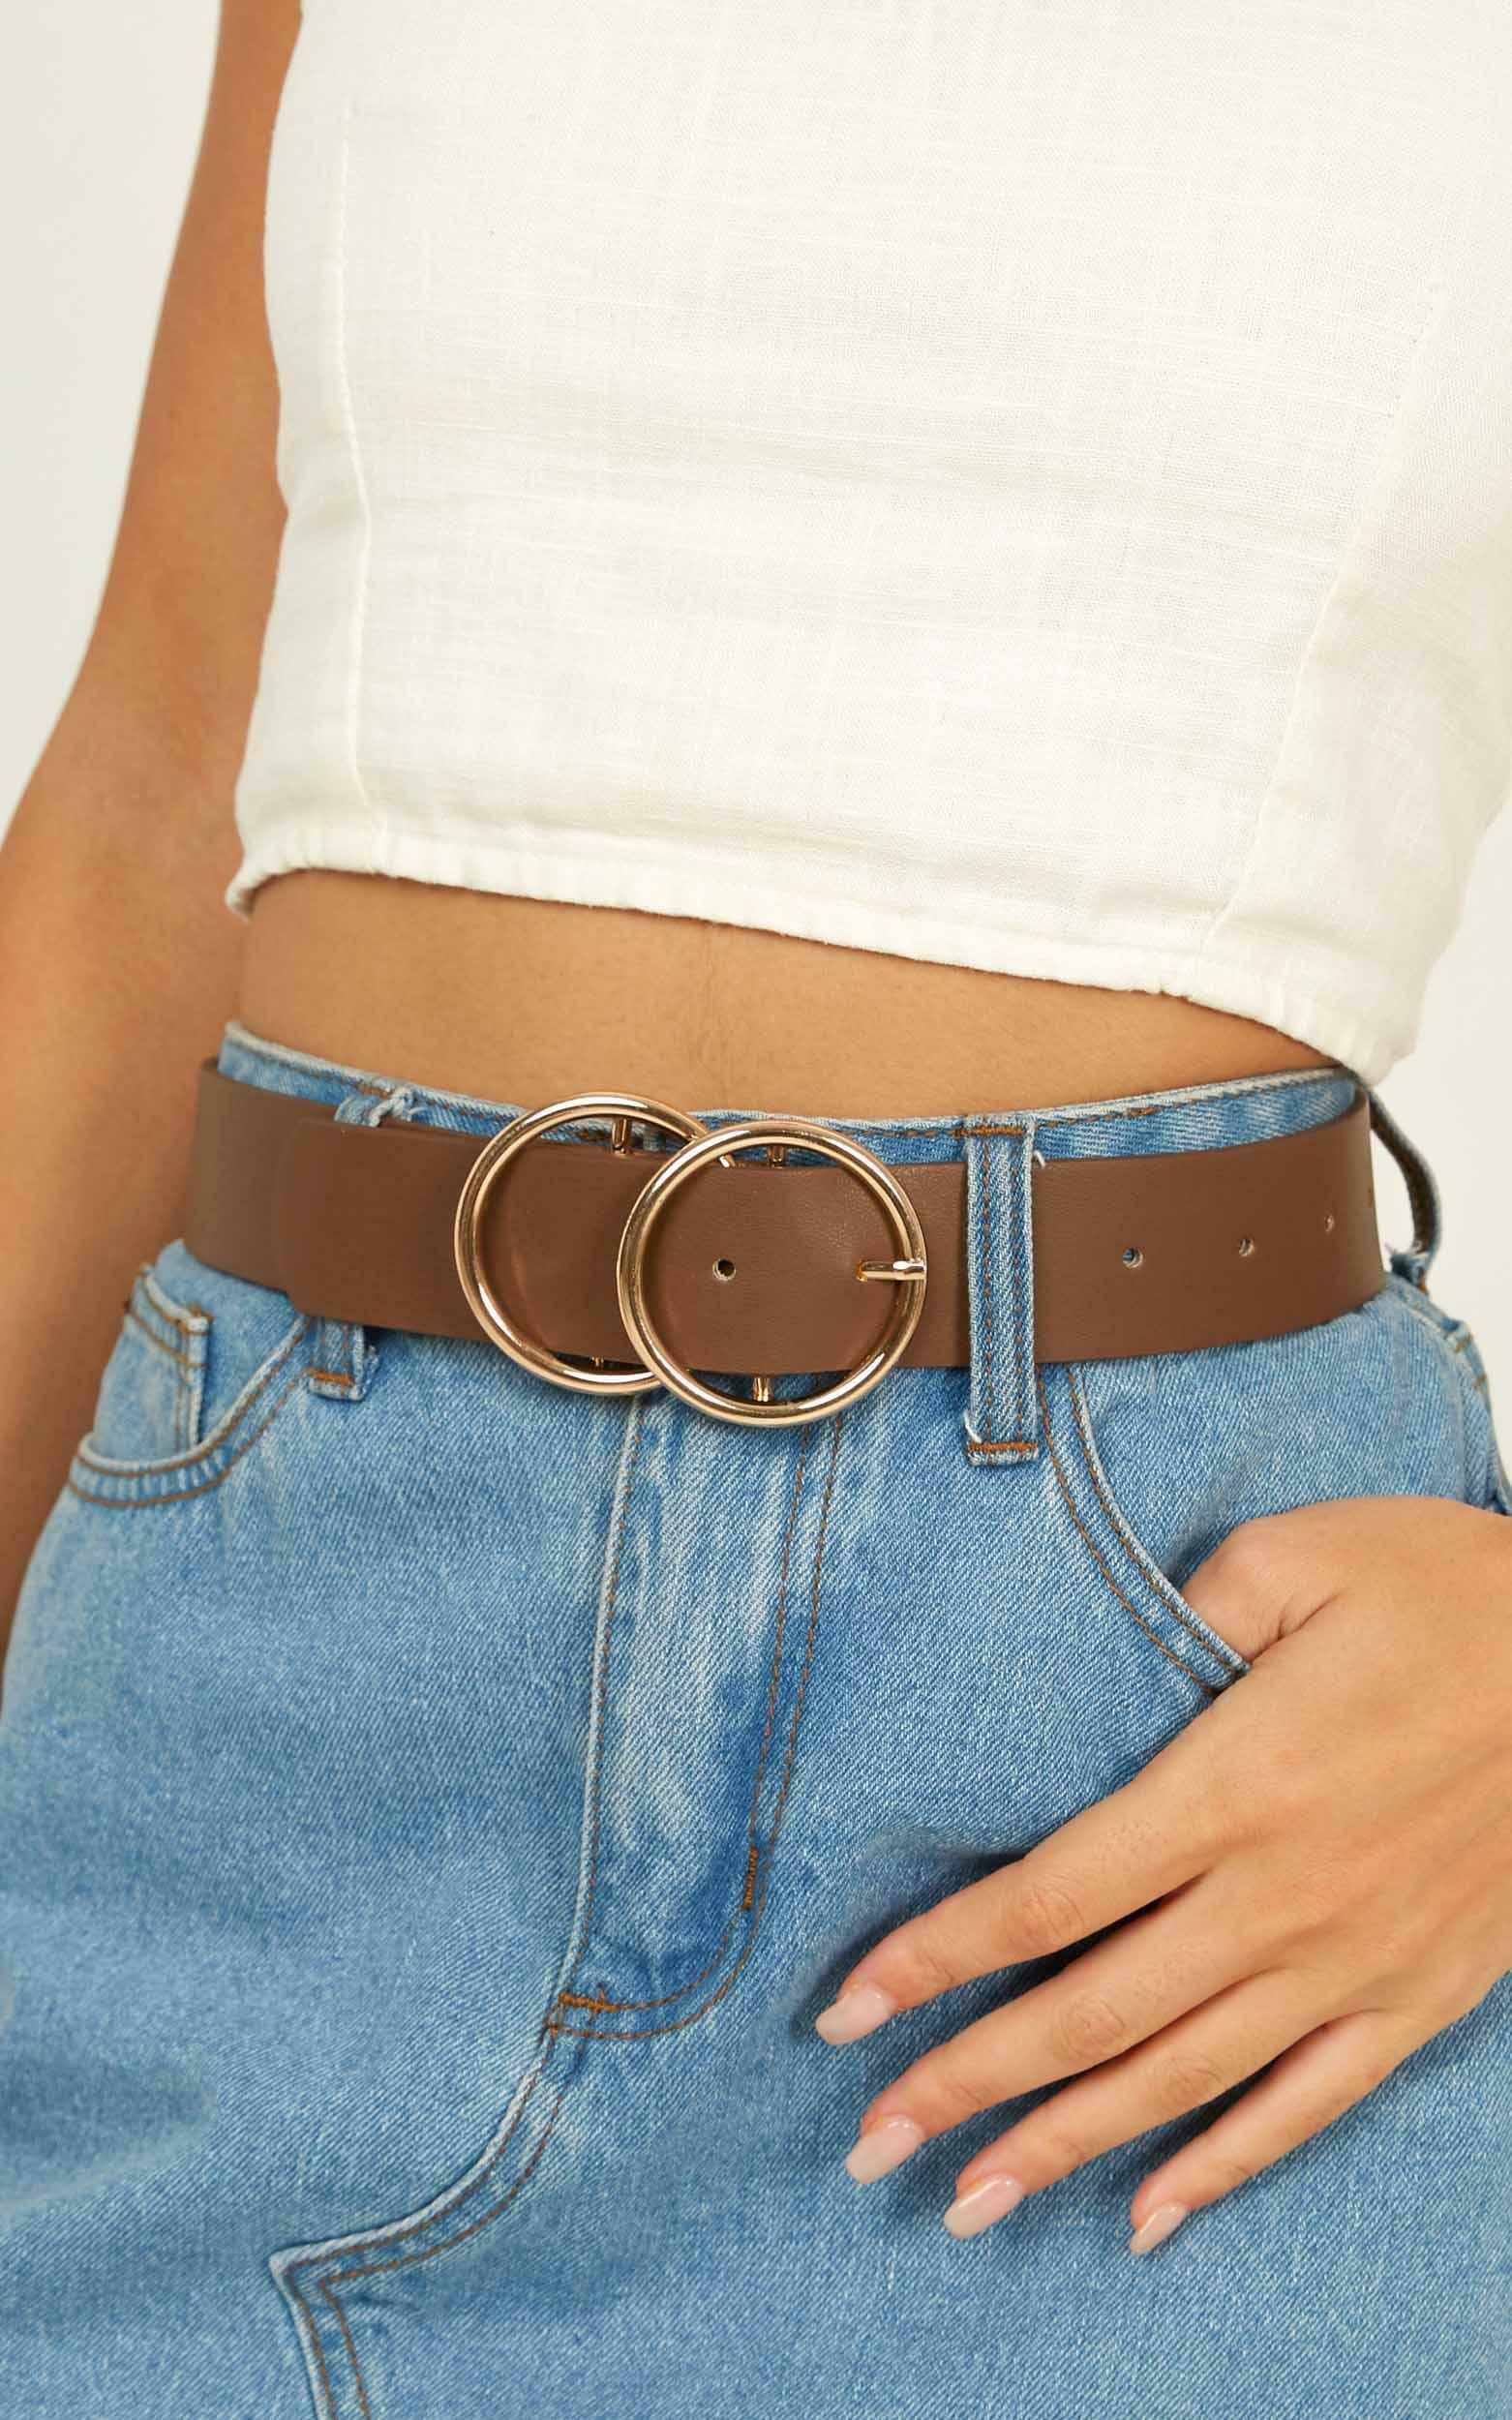 Midnight Charm belt in chocolate and gold - S/M, Brown, hi-res image number null